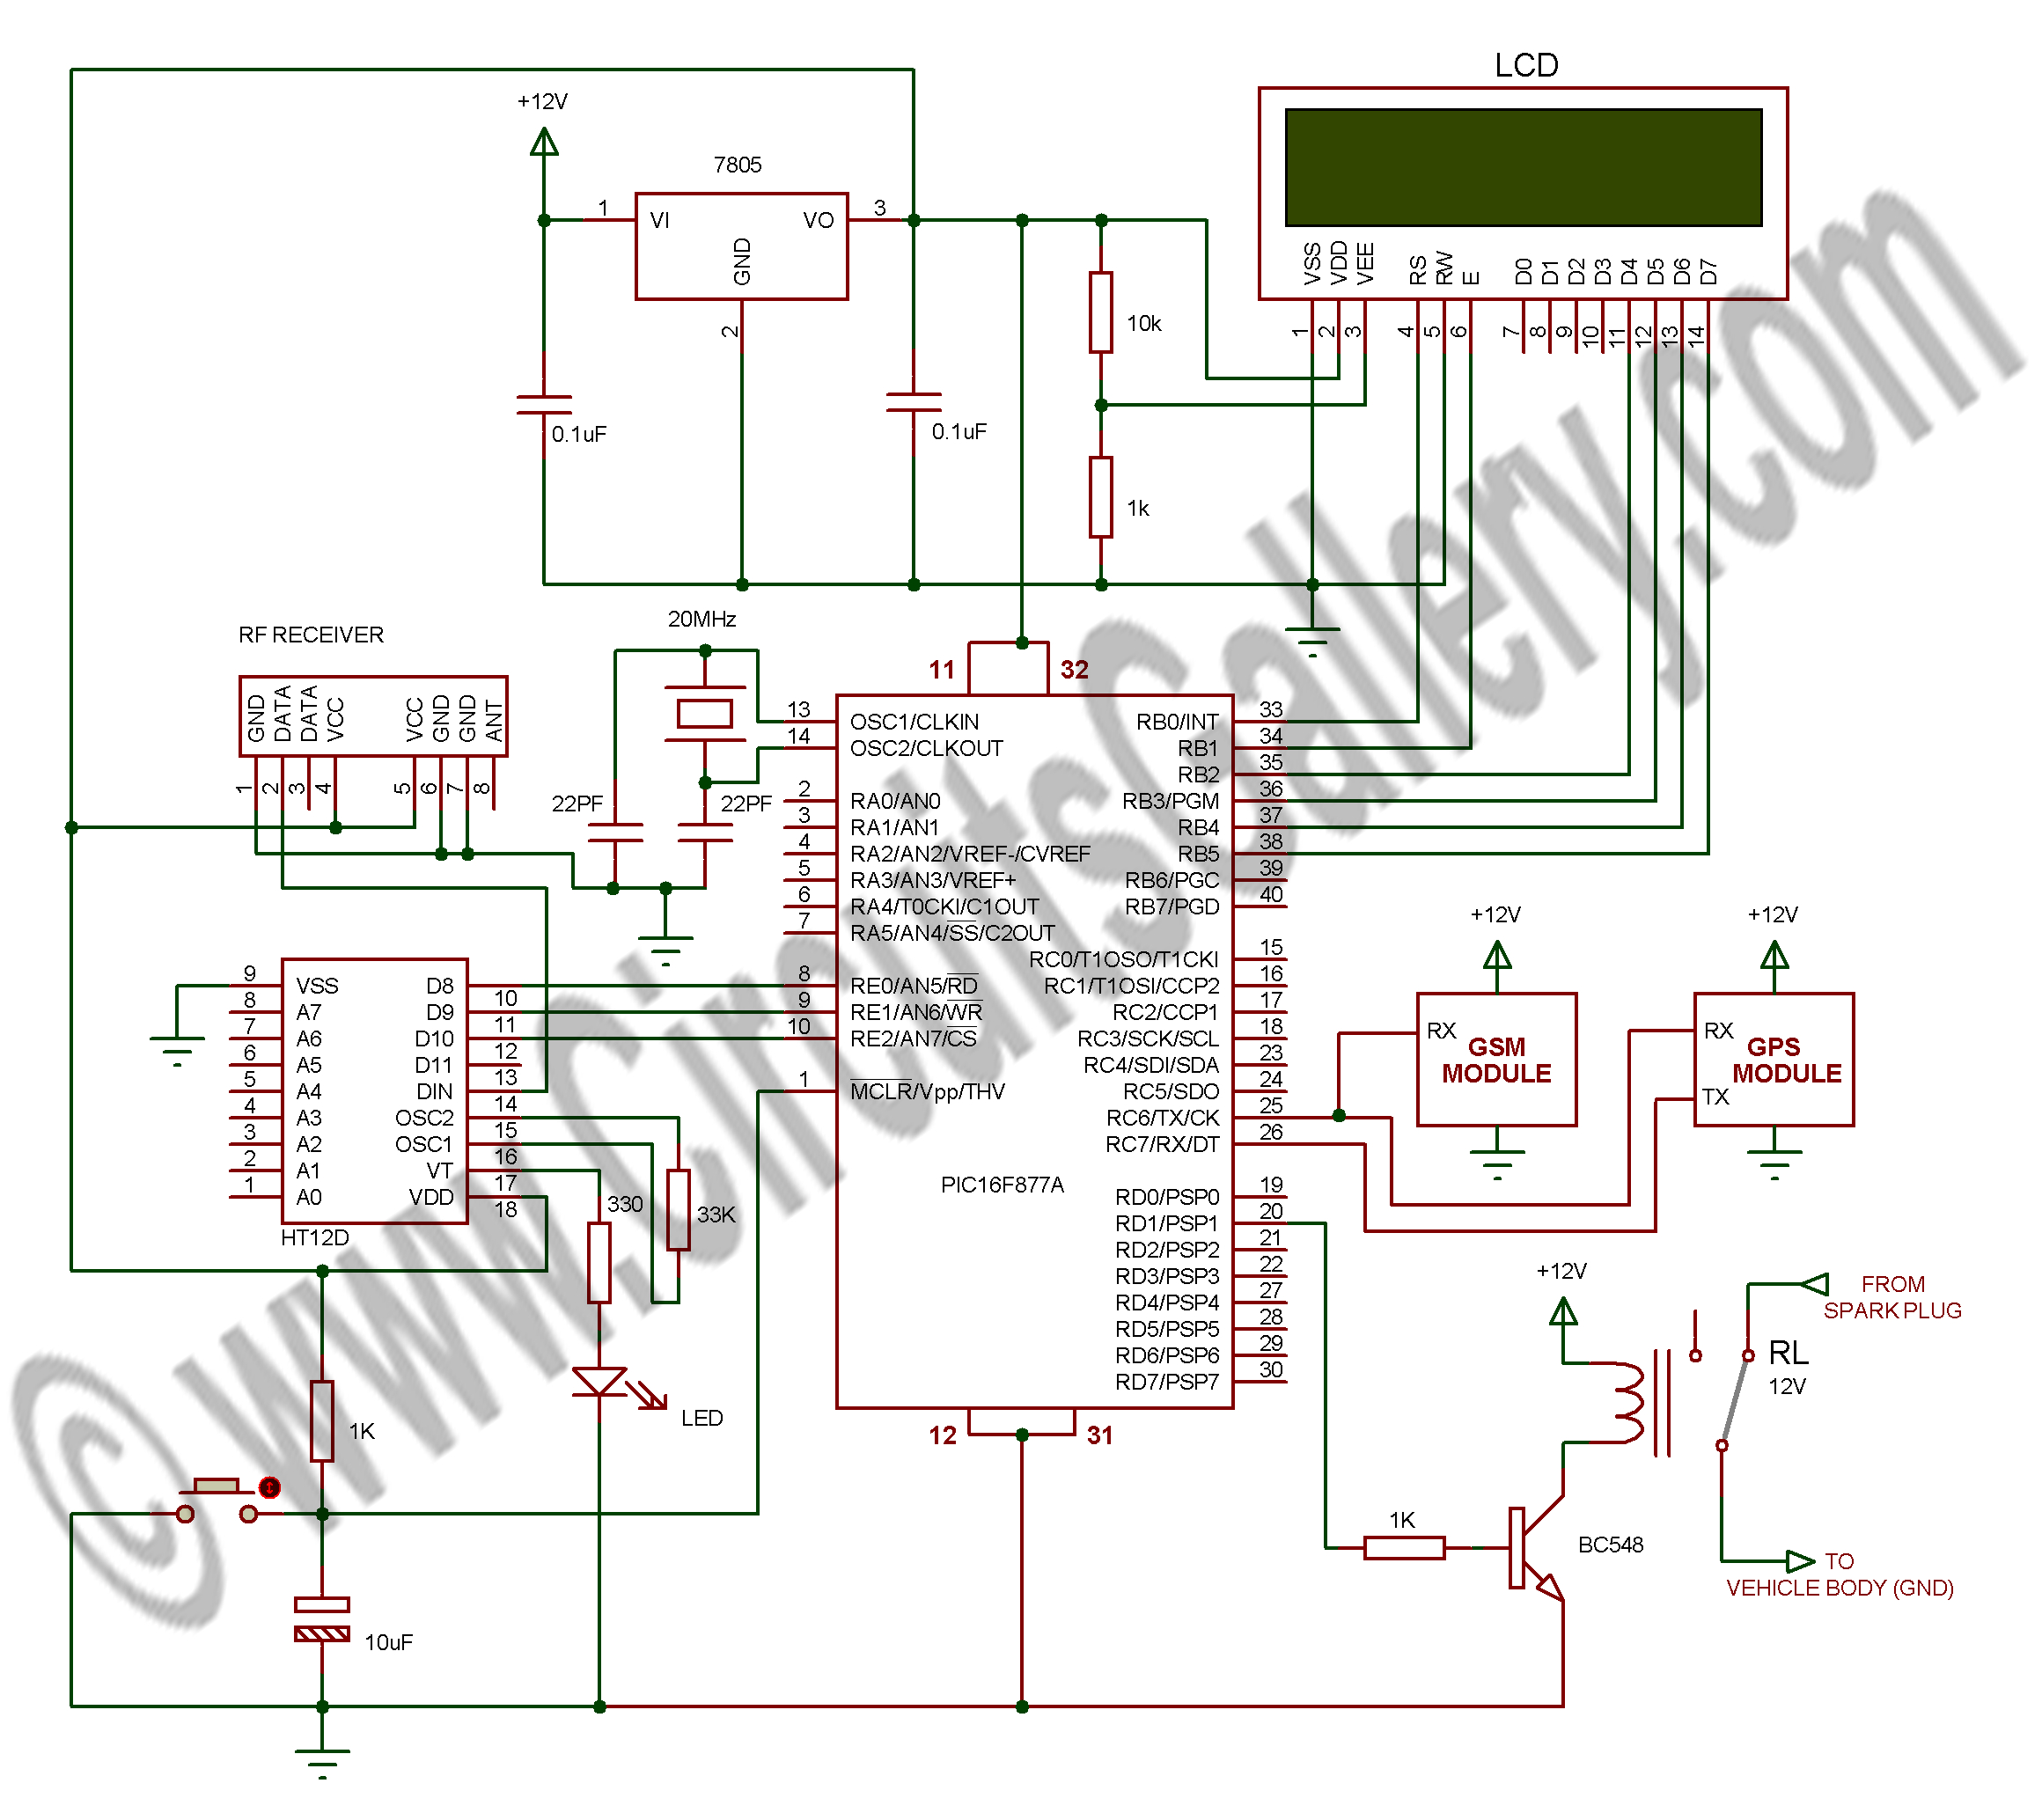 400w hps ballast wiring diagram Download-High Pressure sodium Lamp Wiring Diagram Unique Delighted Electronic Circuit Project Electrical Circuit 16-c